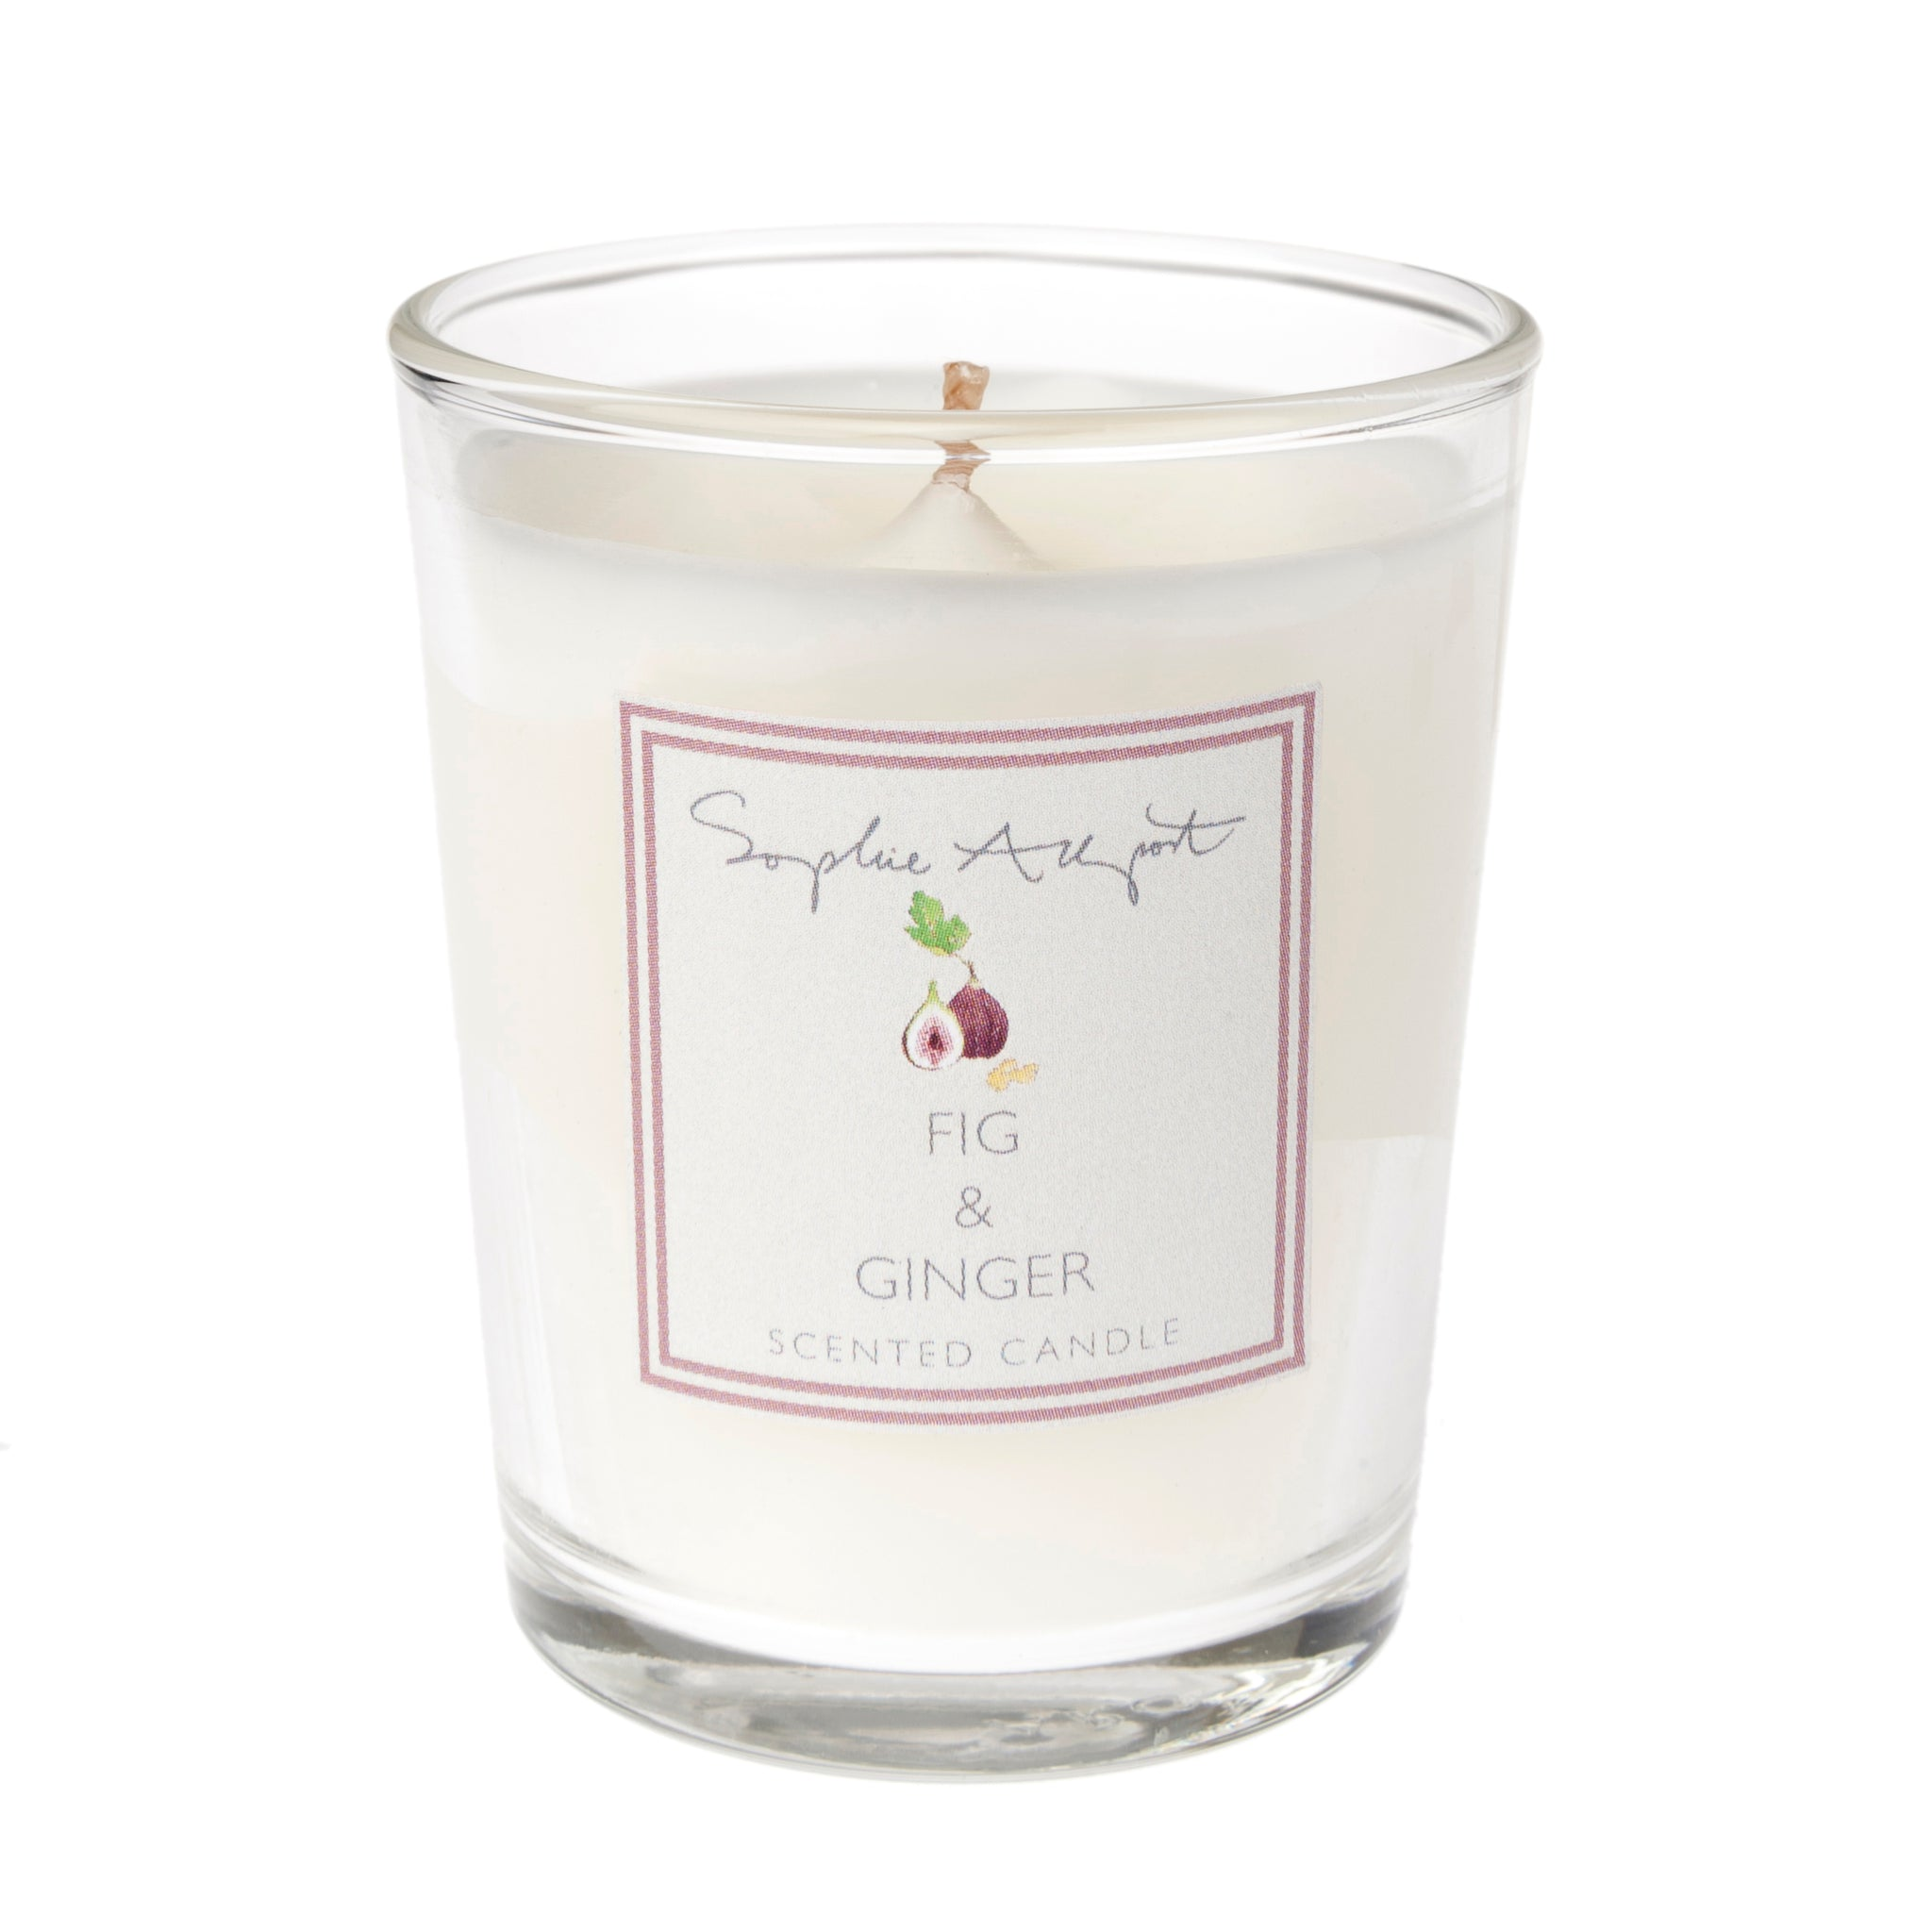 Fig & Ginger Scented Candle -75g